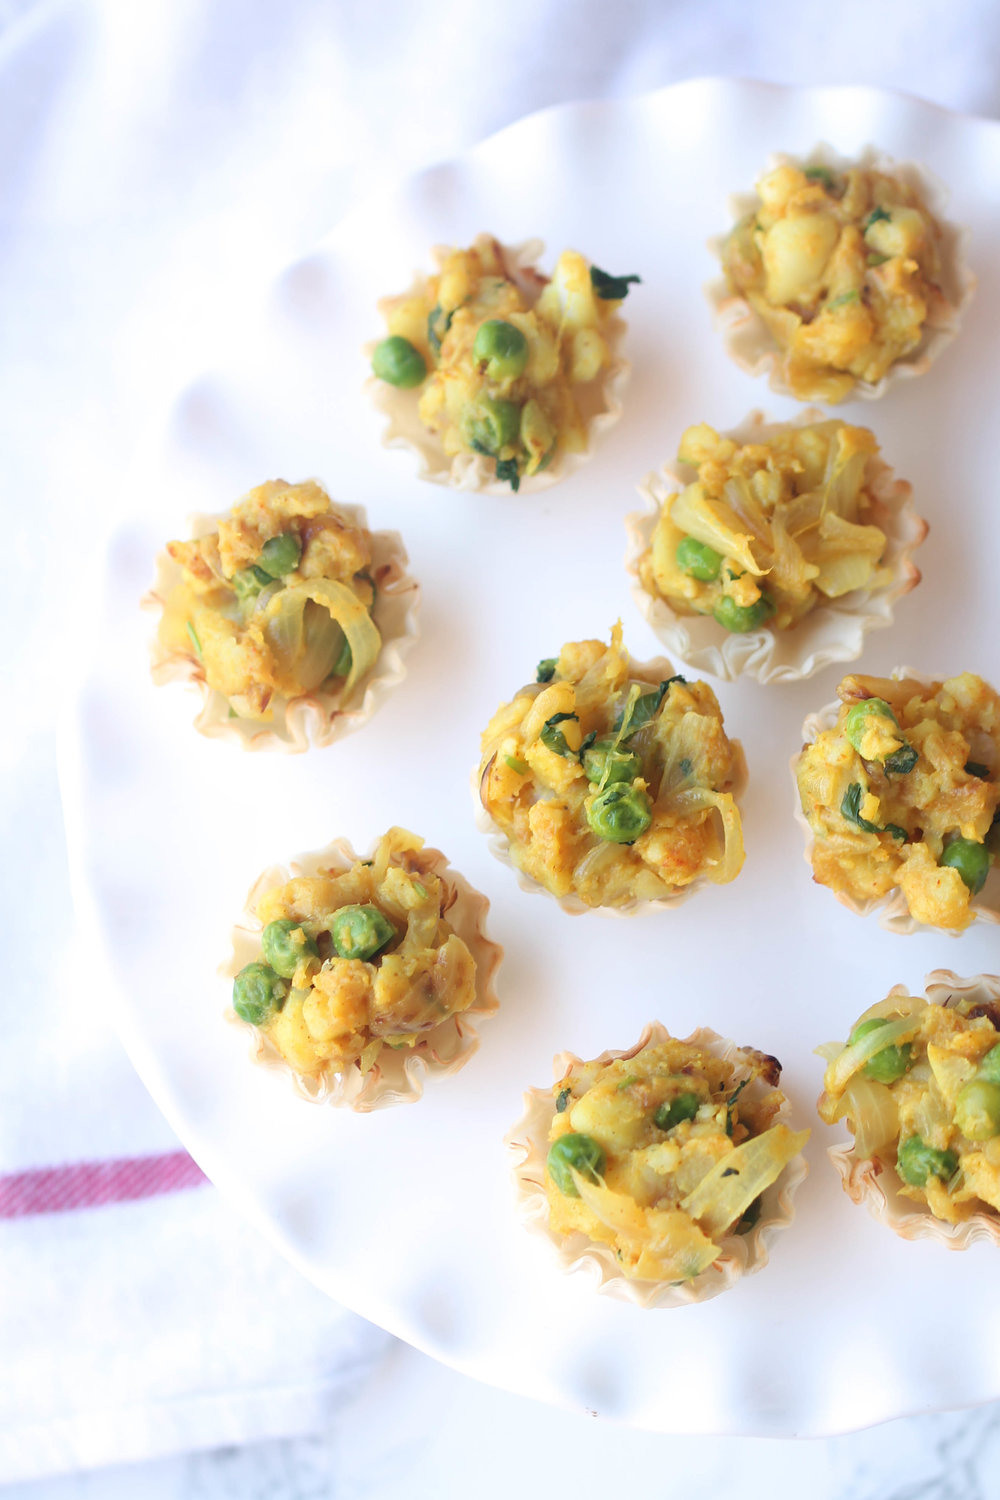 Samosa Bites - Vegan, Healthier version of Samosas for parties and get togethers!